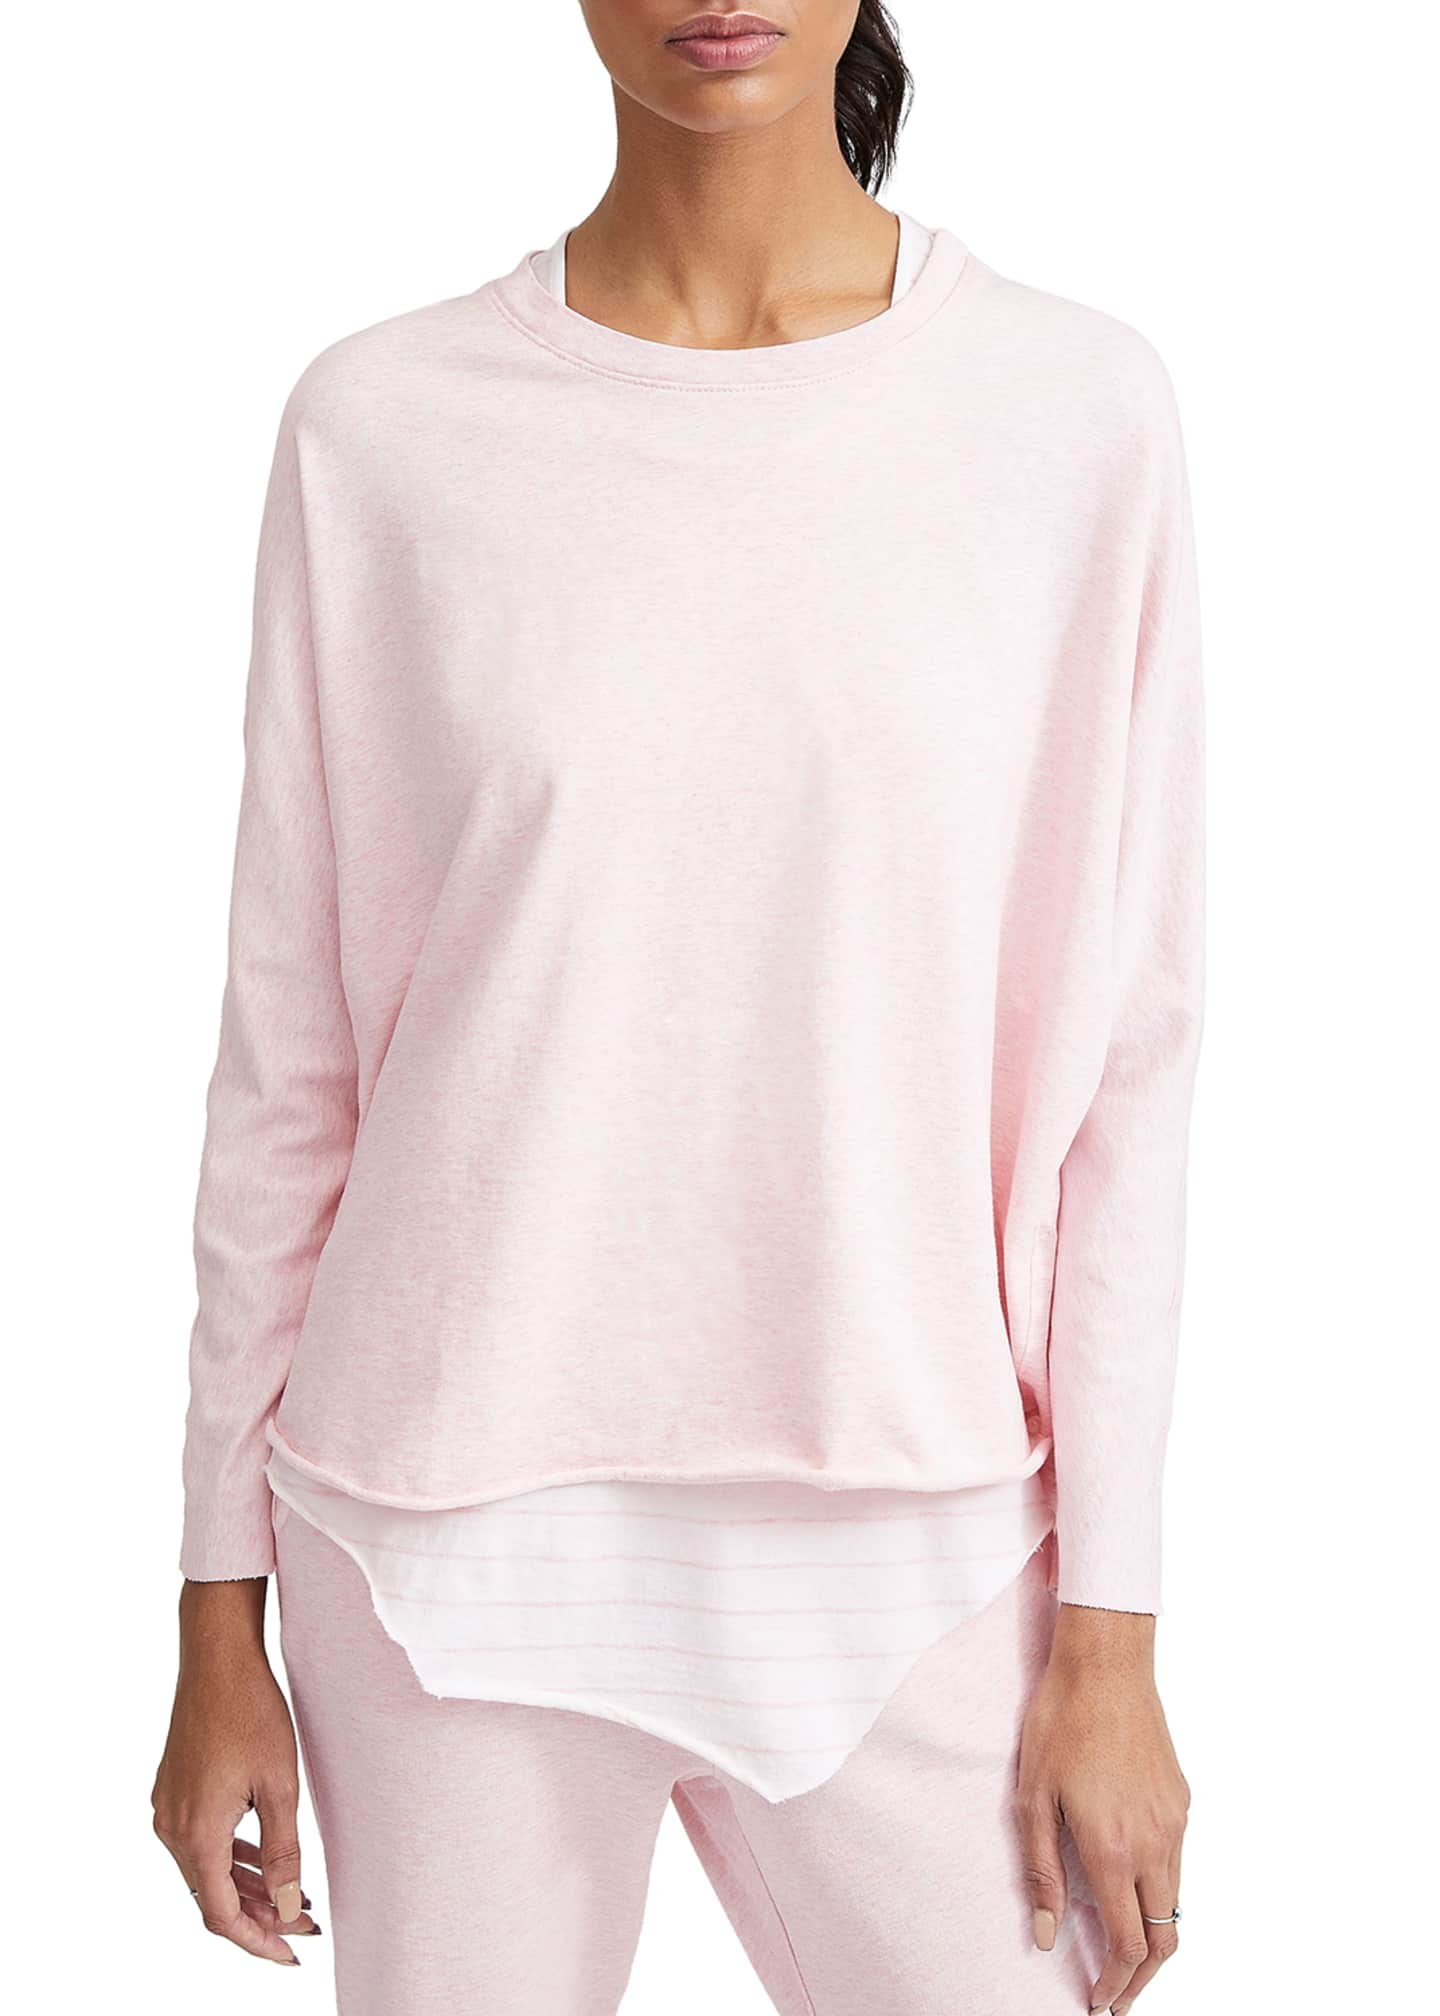 Frank & Eileen Tee Lab Oversized Continuous Long-Sleeve